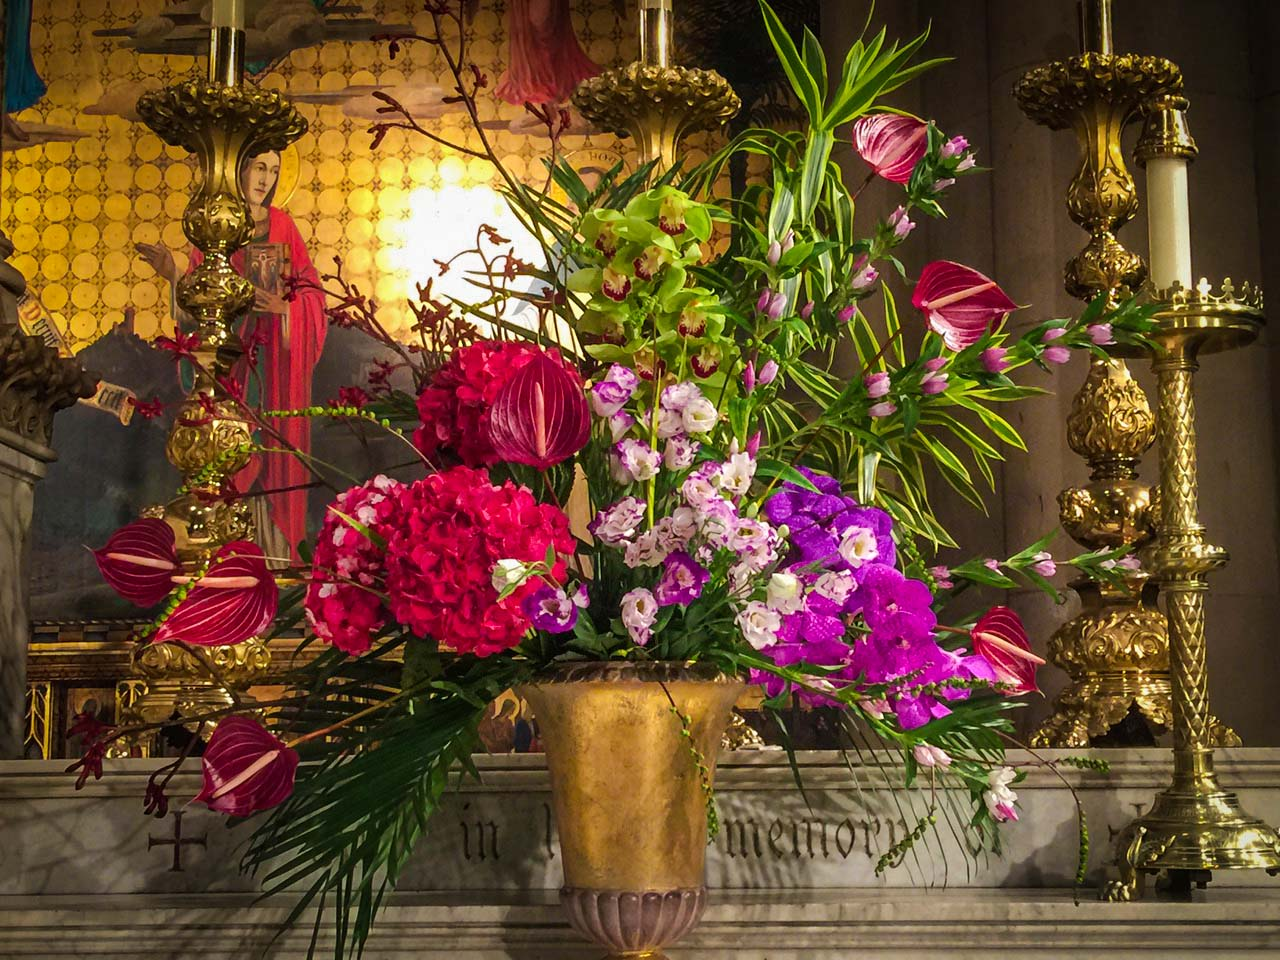 Flowers on the High Altar on the Feast of the Transfiguration, Sunday, August 6